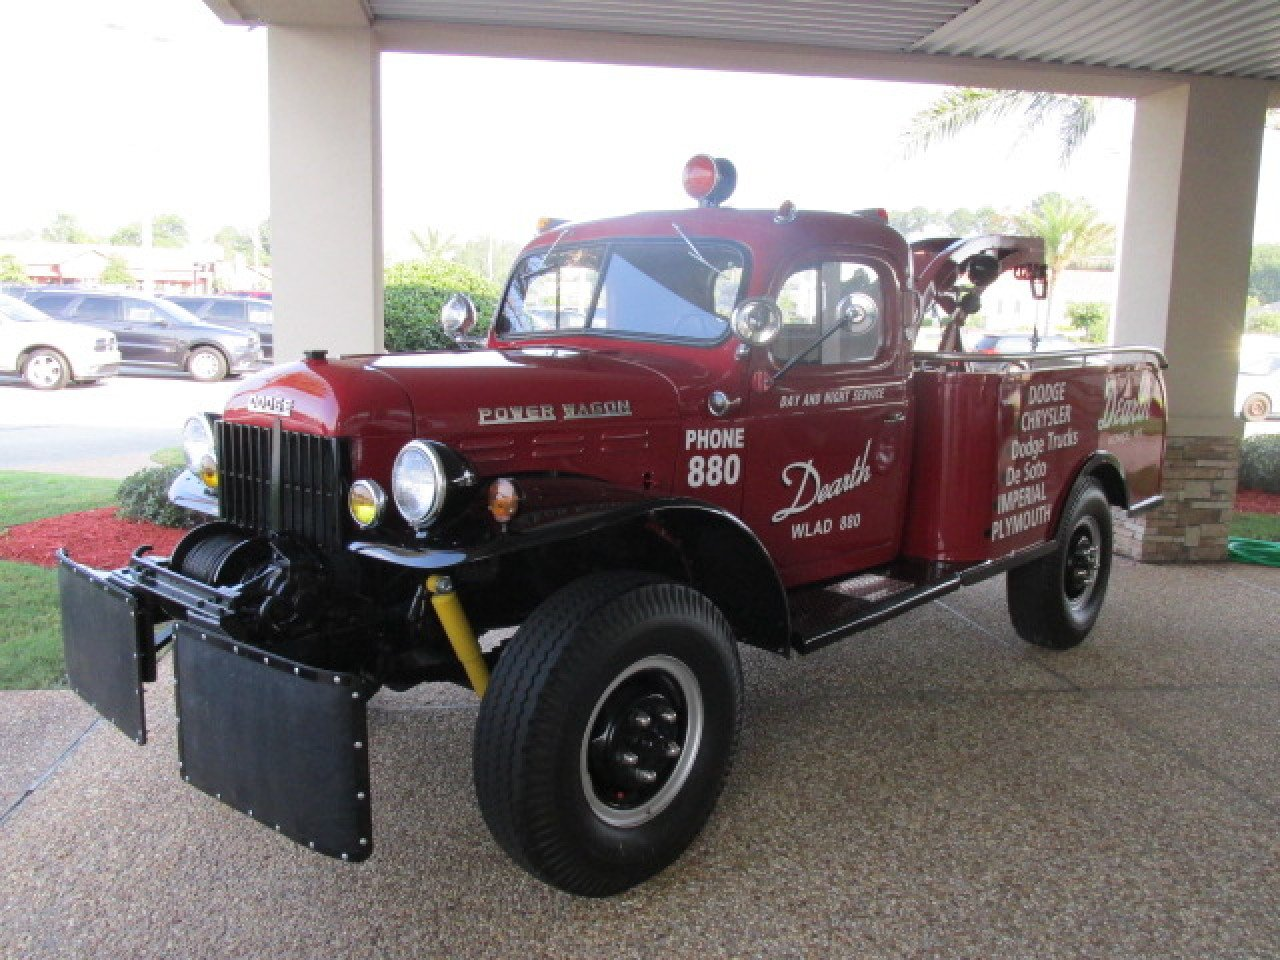 Craigslist Valdosta Ga >> 1951 Dodge Power Wagon for sale near Valdosta, Georgia 31602 - Classics on Autotrader